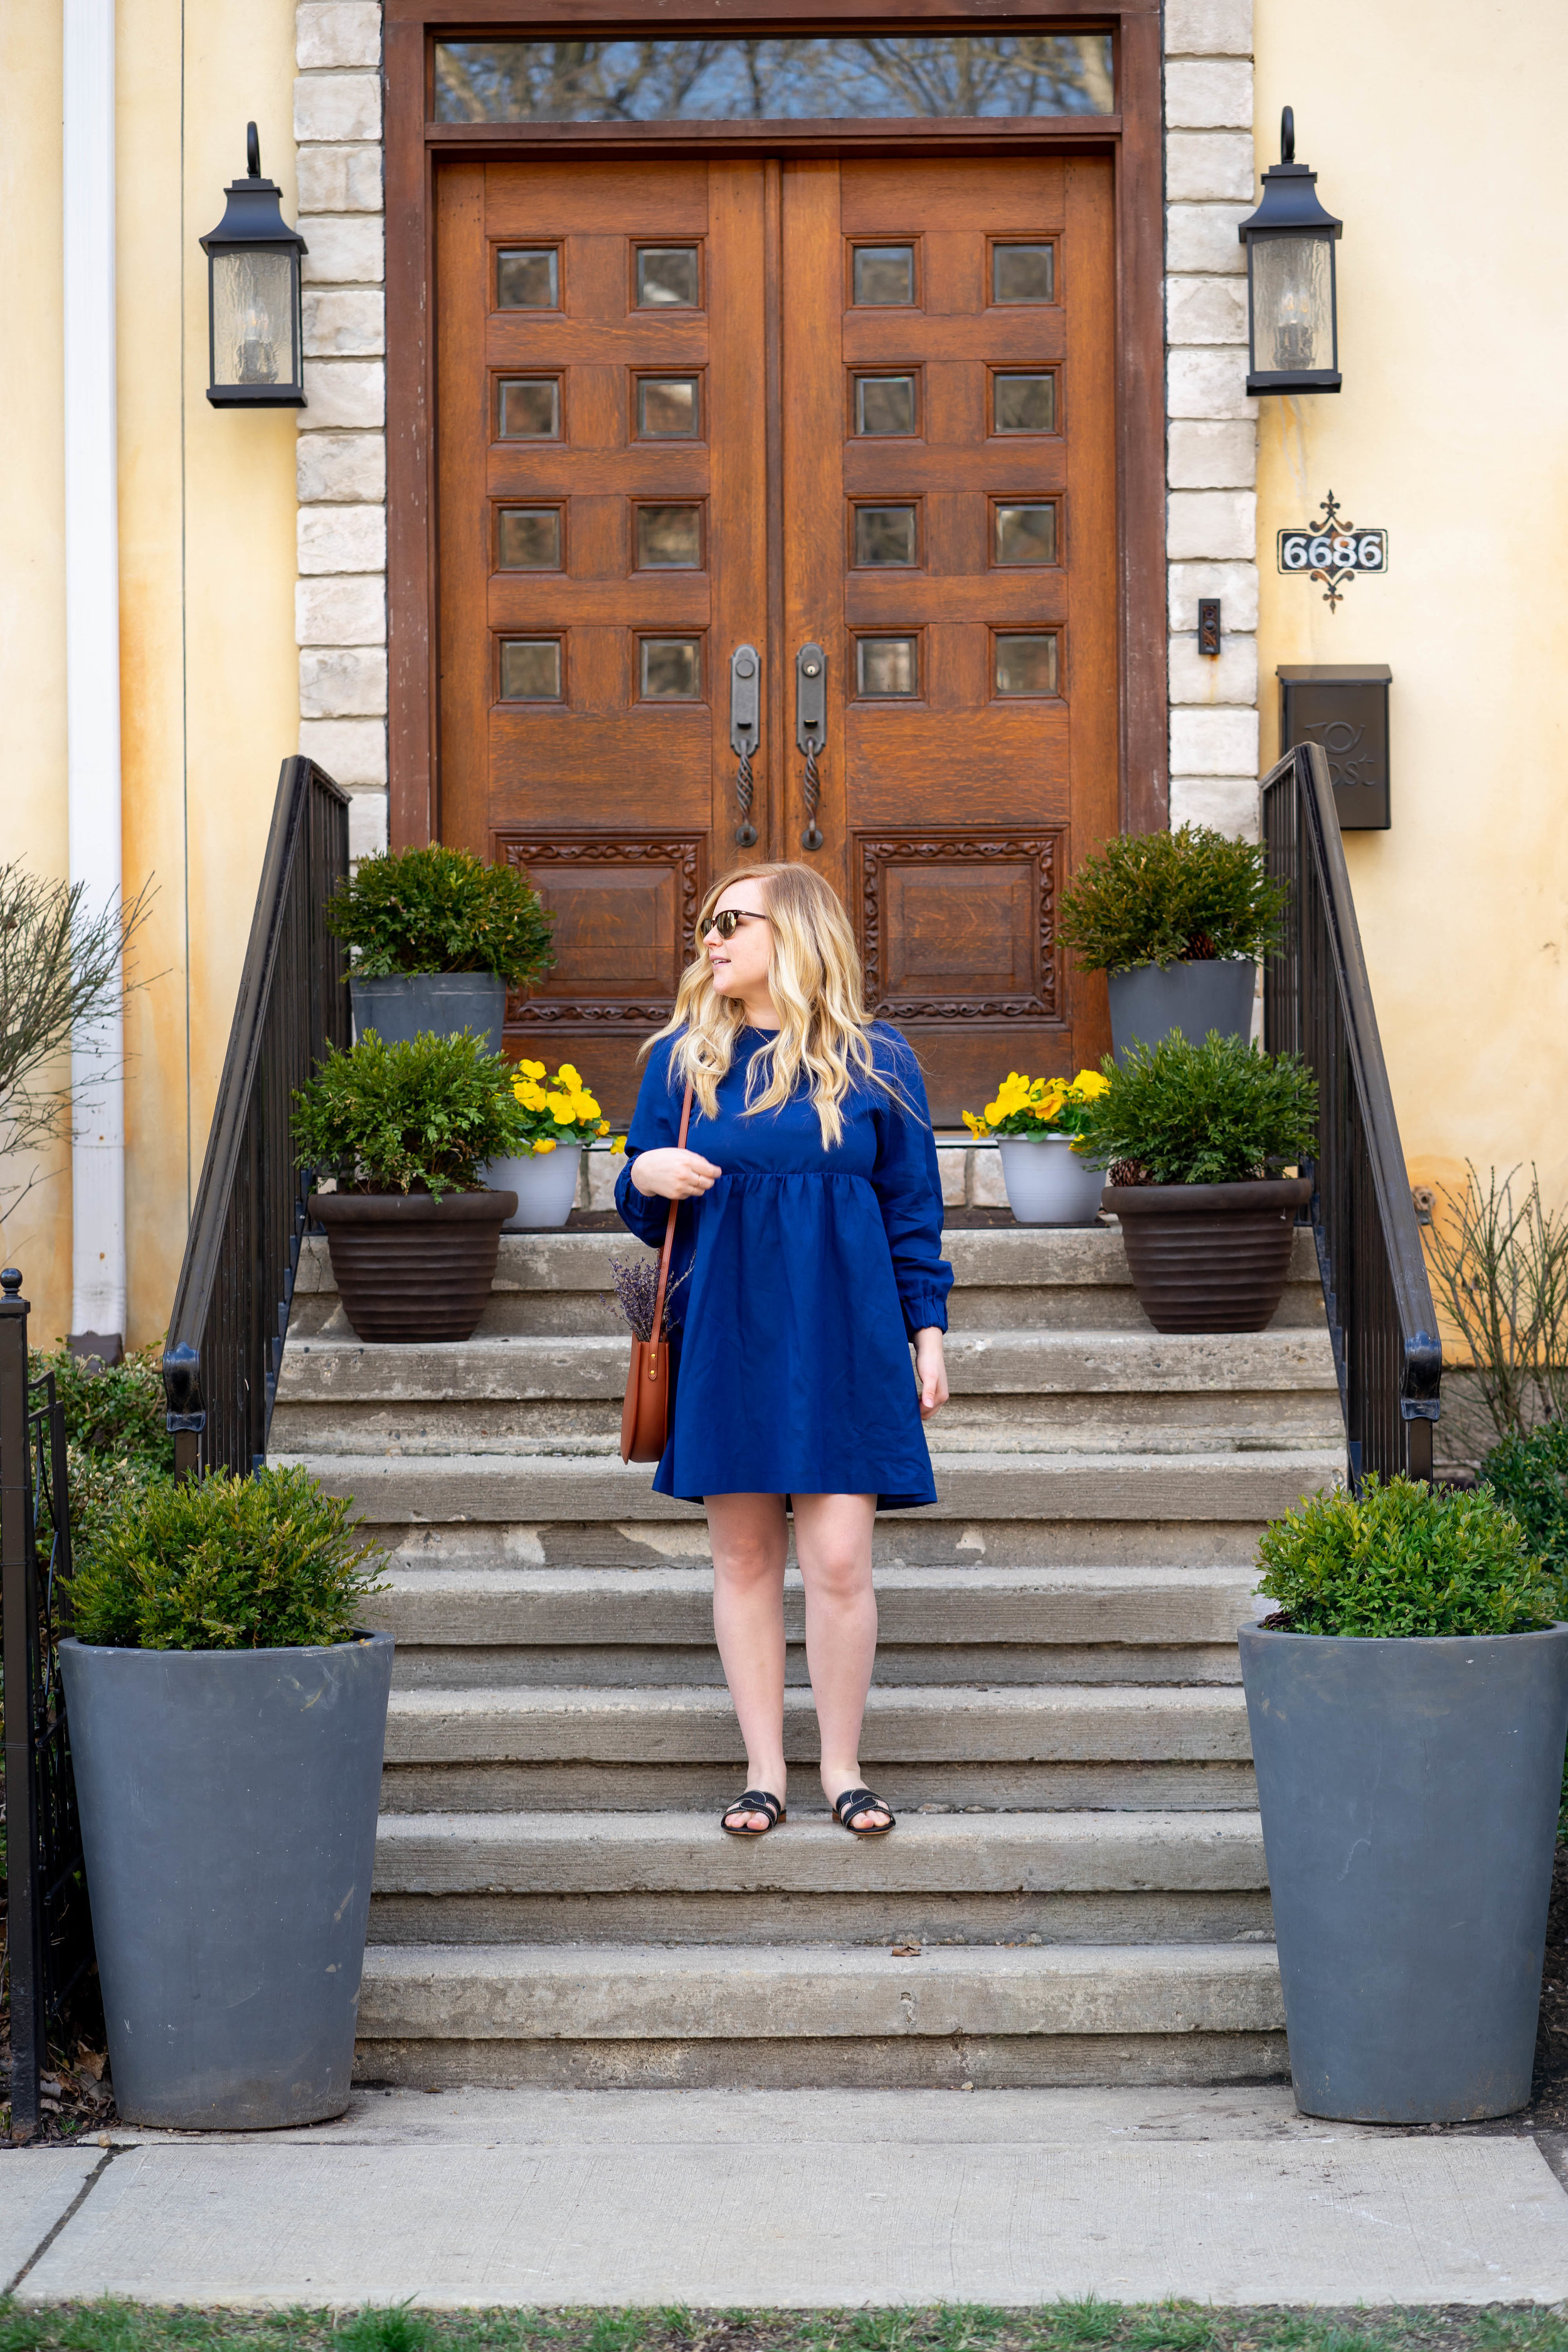 Maggie a la Mode Easy Breezy Spring Style - Sezane Candice Dress, Kaanas Santorini Infinity Sandals, The Stowe Eloise Bag